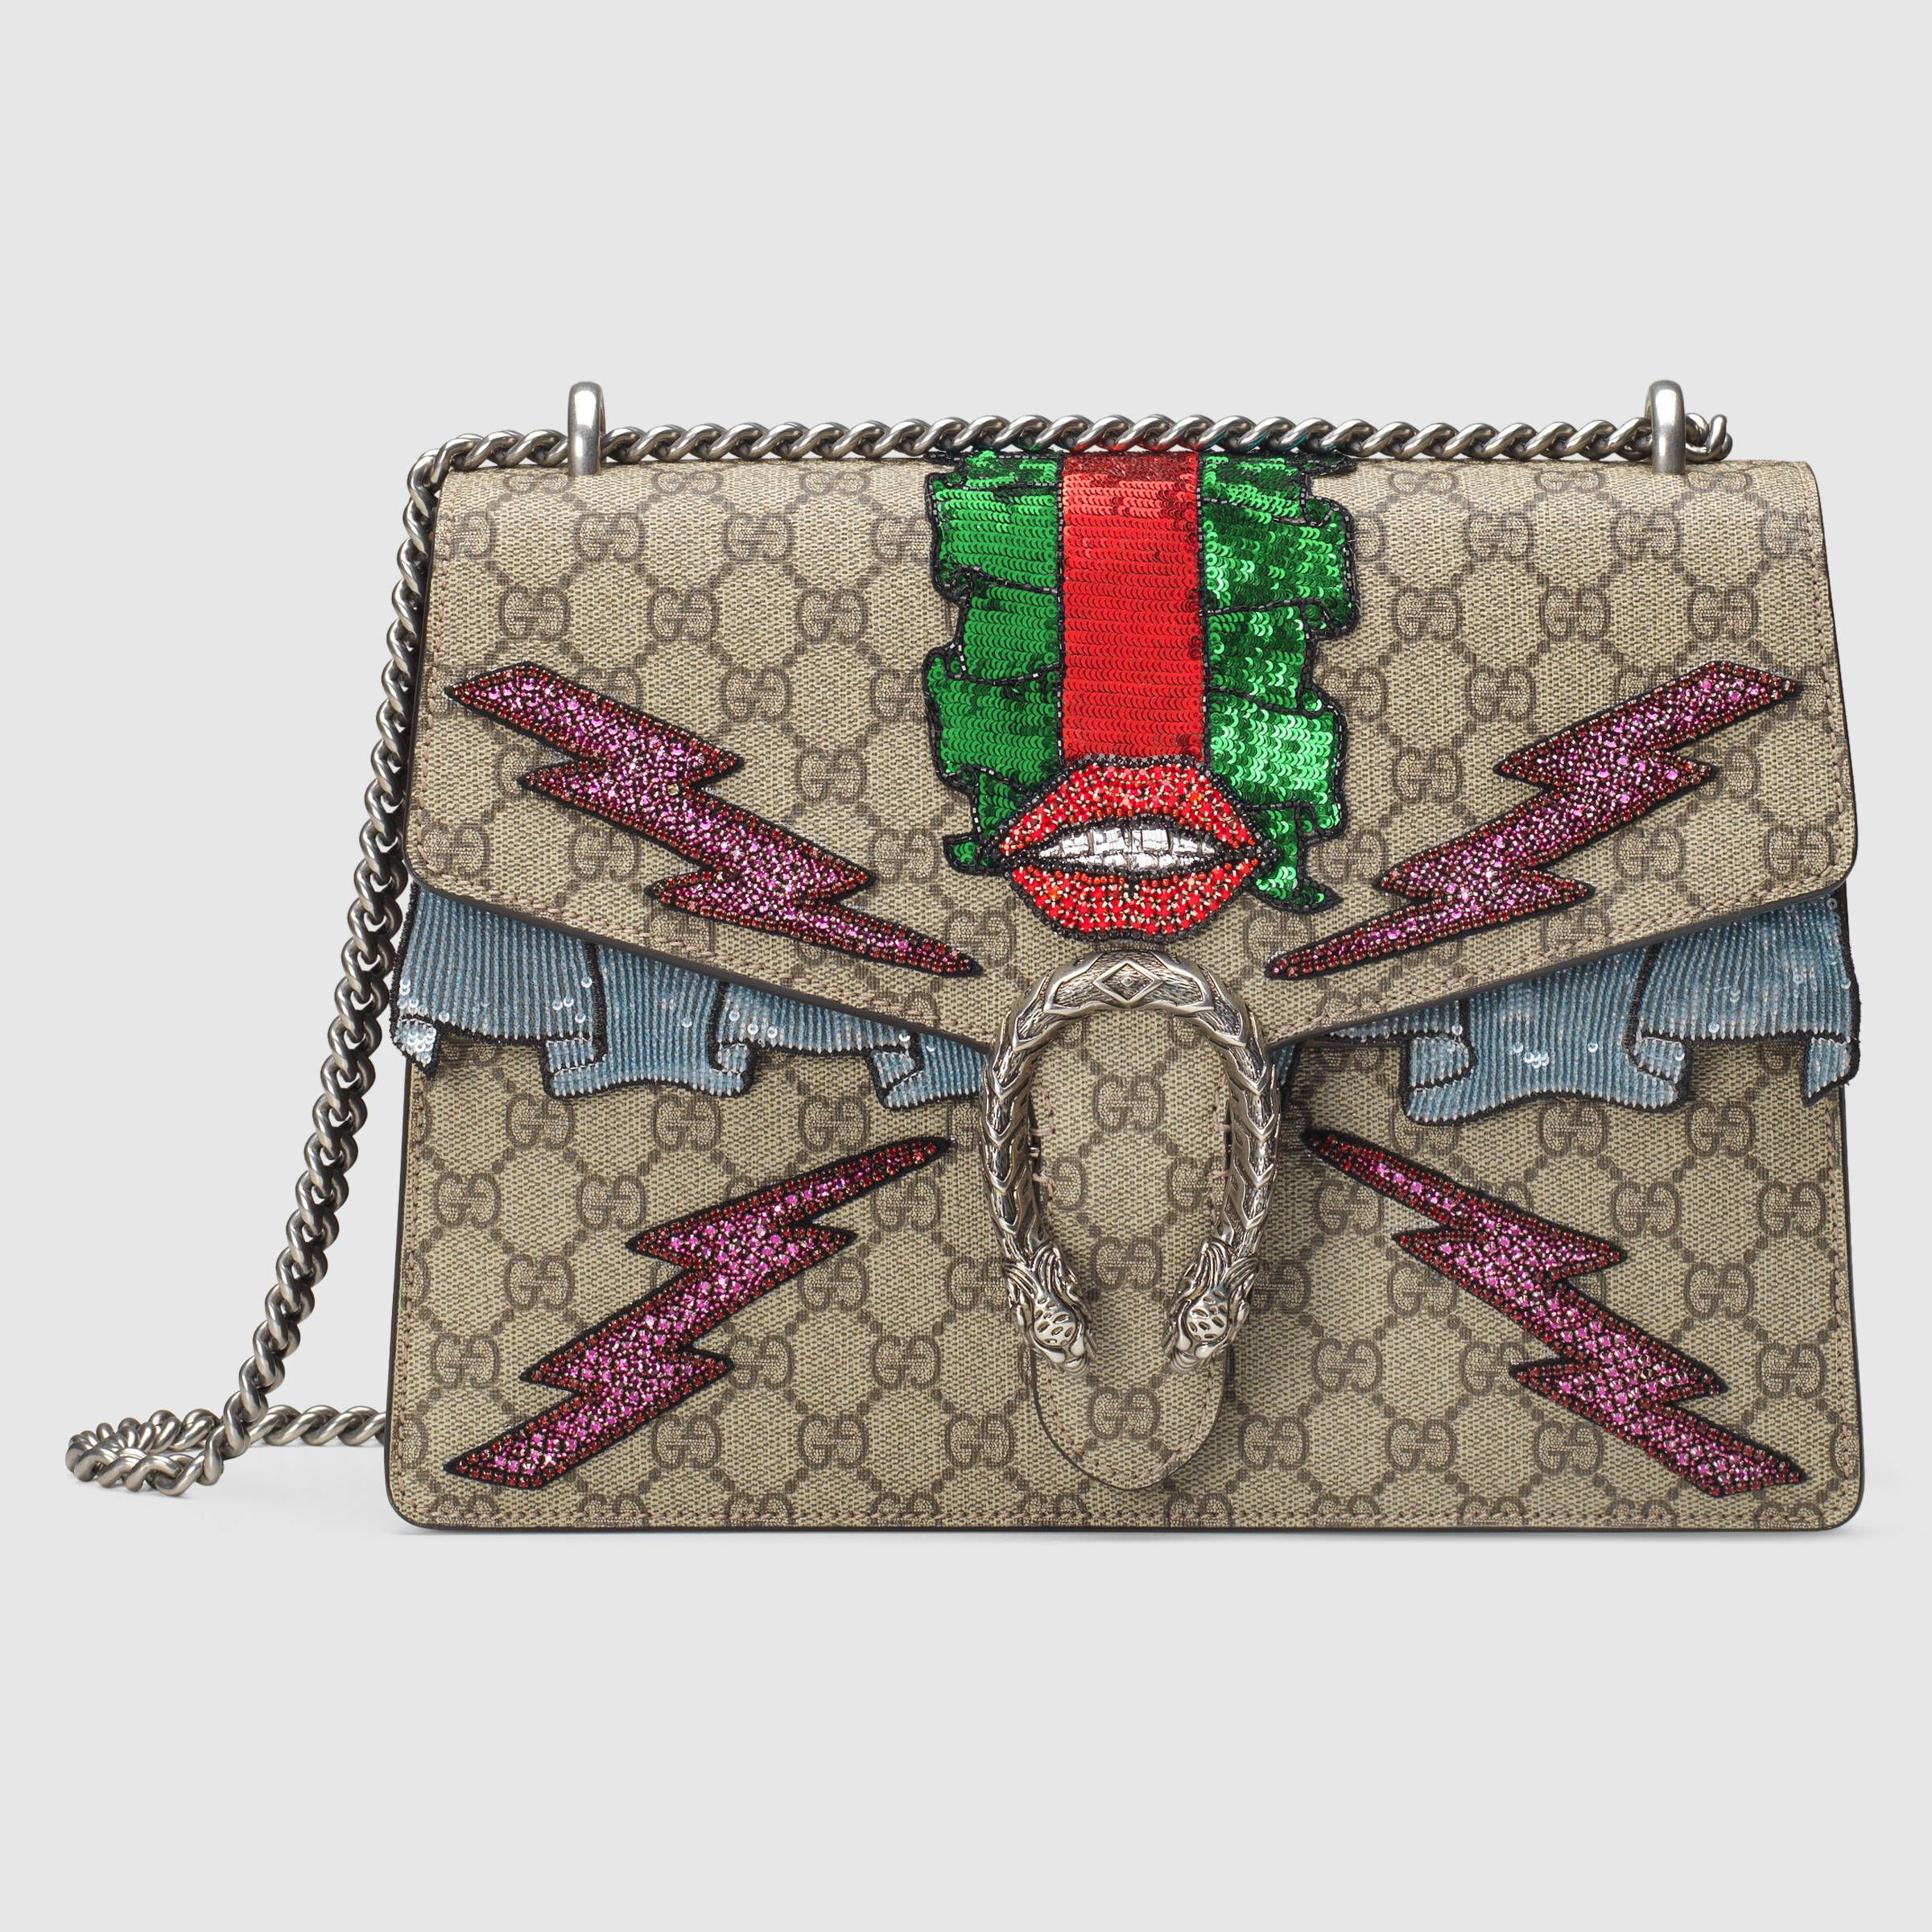 77011f54253 Gucci Women - Gucci Beige/Ebony Dionysus GG Supreme embroidered bag w/lips  on front $3,800.00